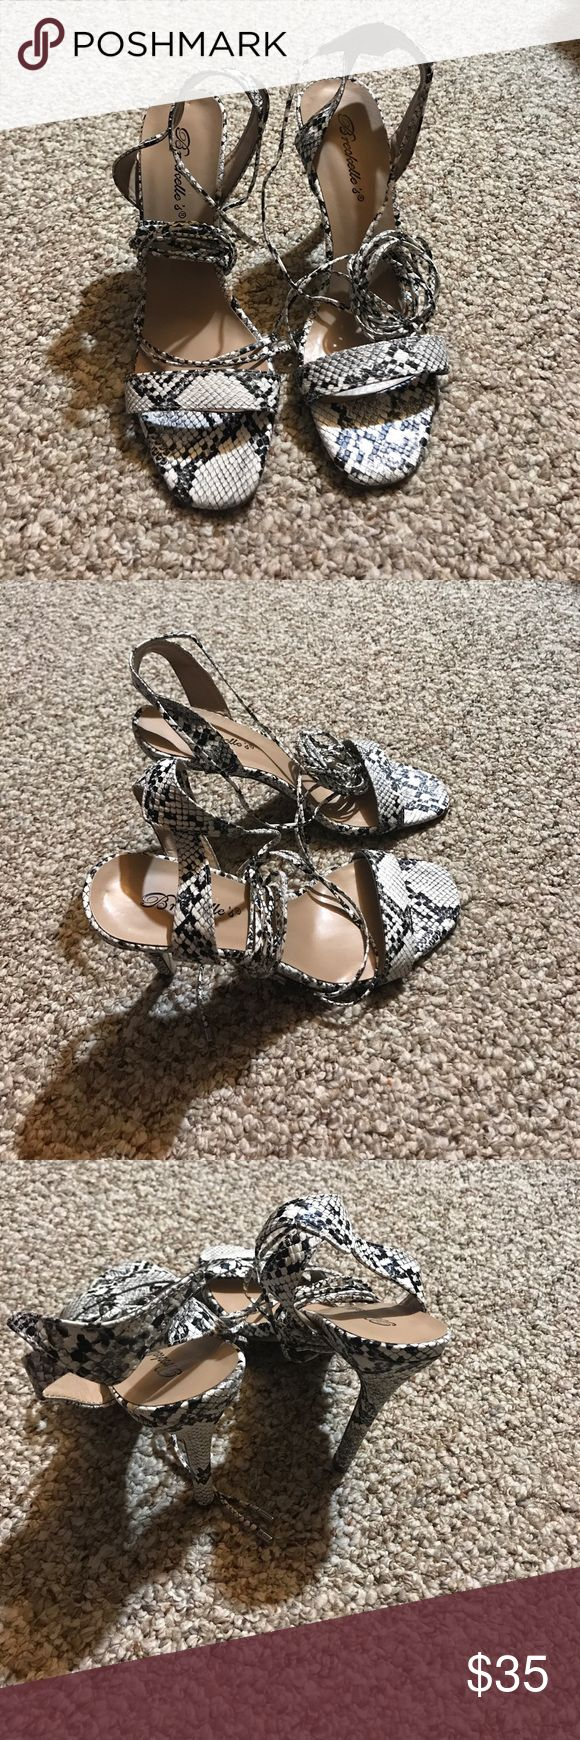 Black and white snake skin strappy heels. These are brand new strappy heels that were unfortunately were too small for me. These are cute for the summer and can be worn to multiple events. Shoes Heels